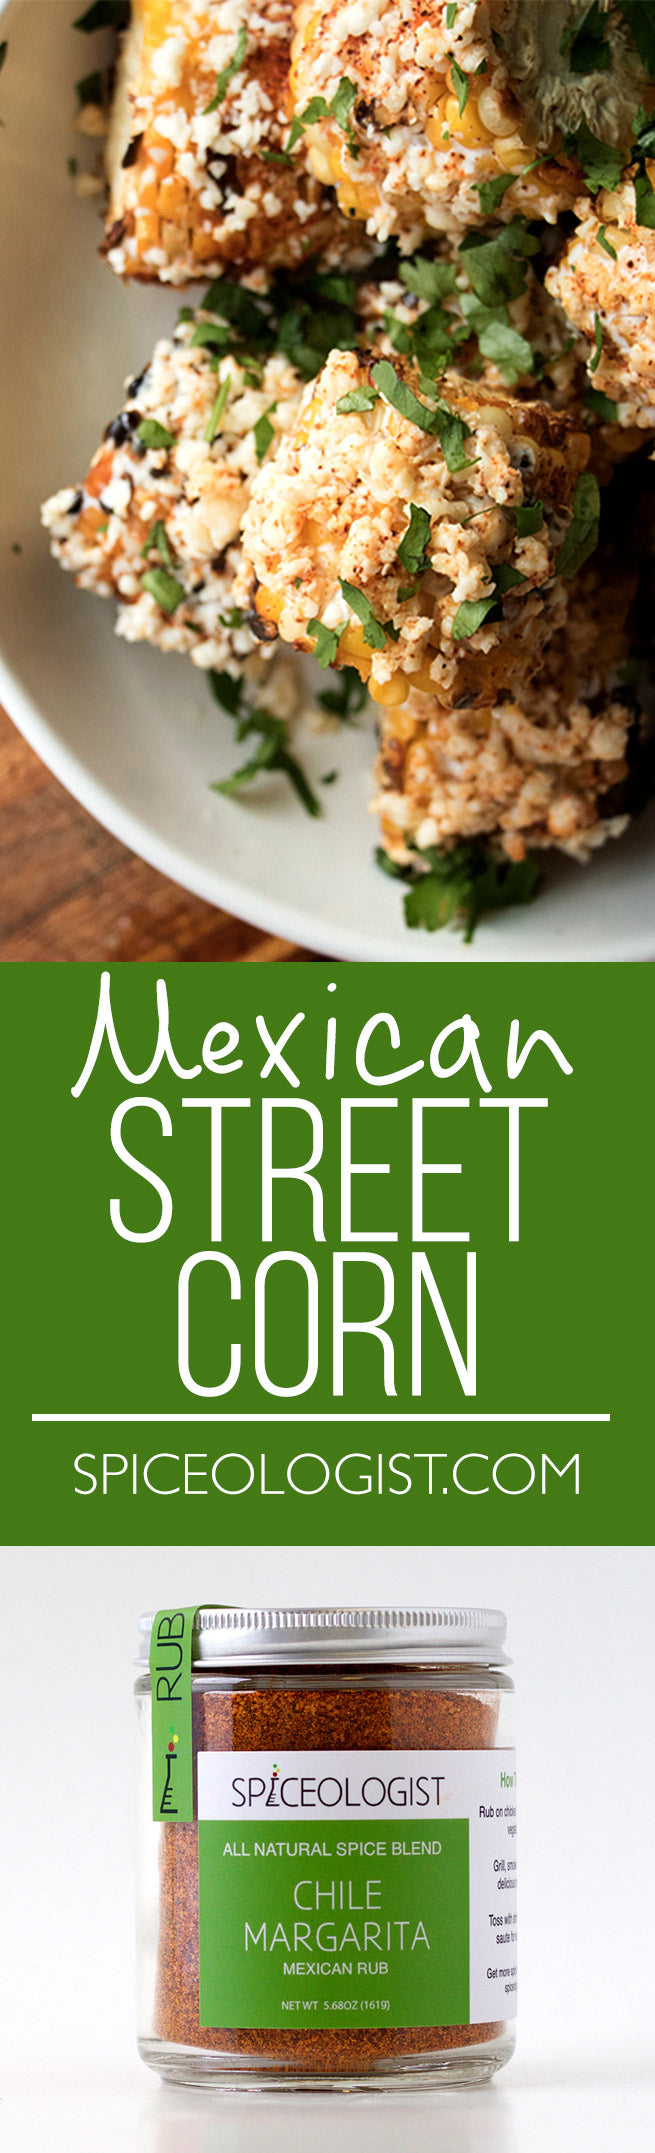 Mexican Street Corn | spiceologist.com